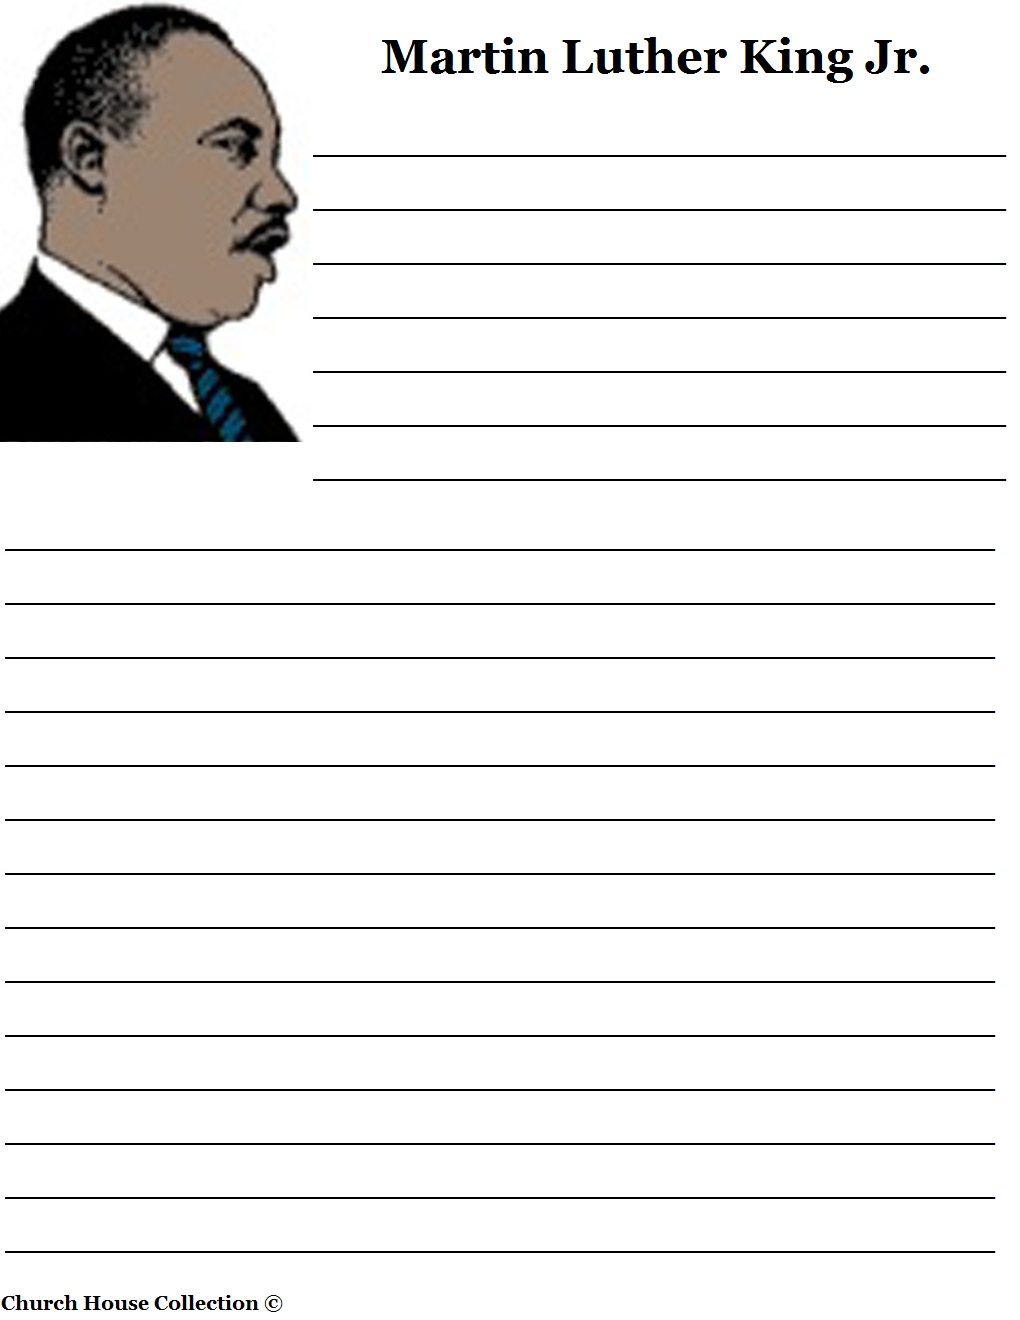 missouri martin luther king jr. youth essays